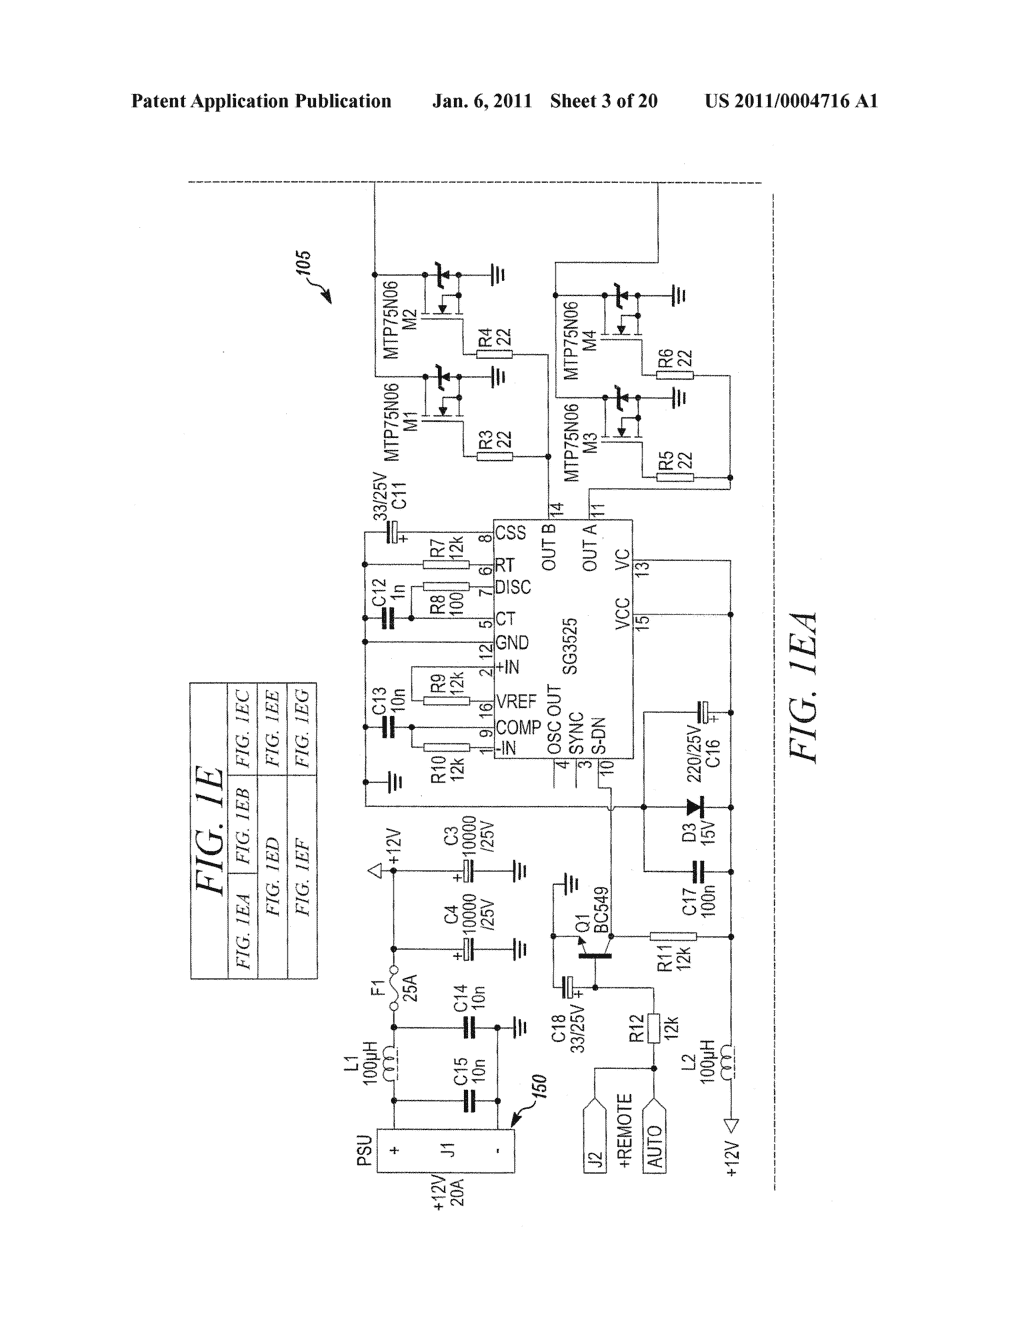 Discrete Lateral Mosfet Power Amplifier Expansion Card Diagram Circuits Schematic And Image 04